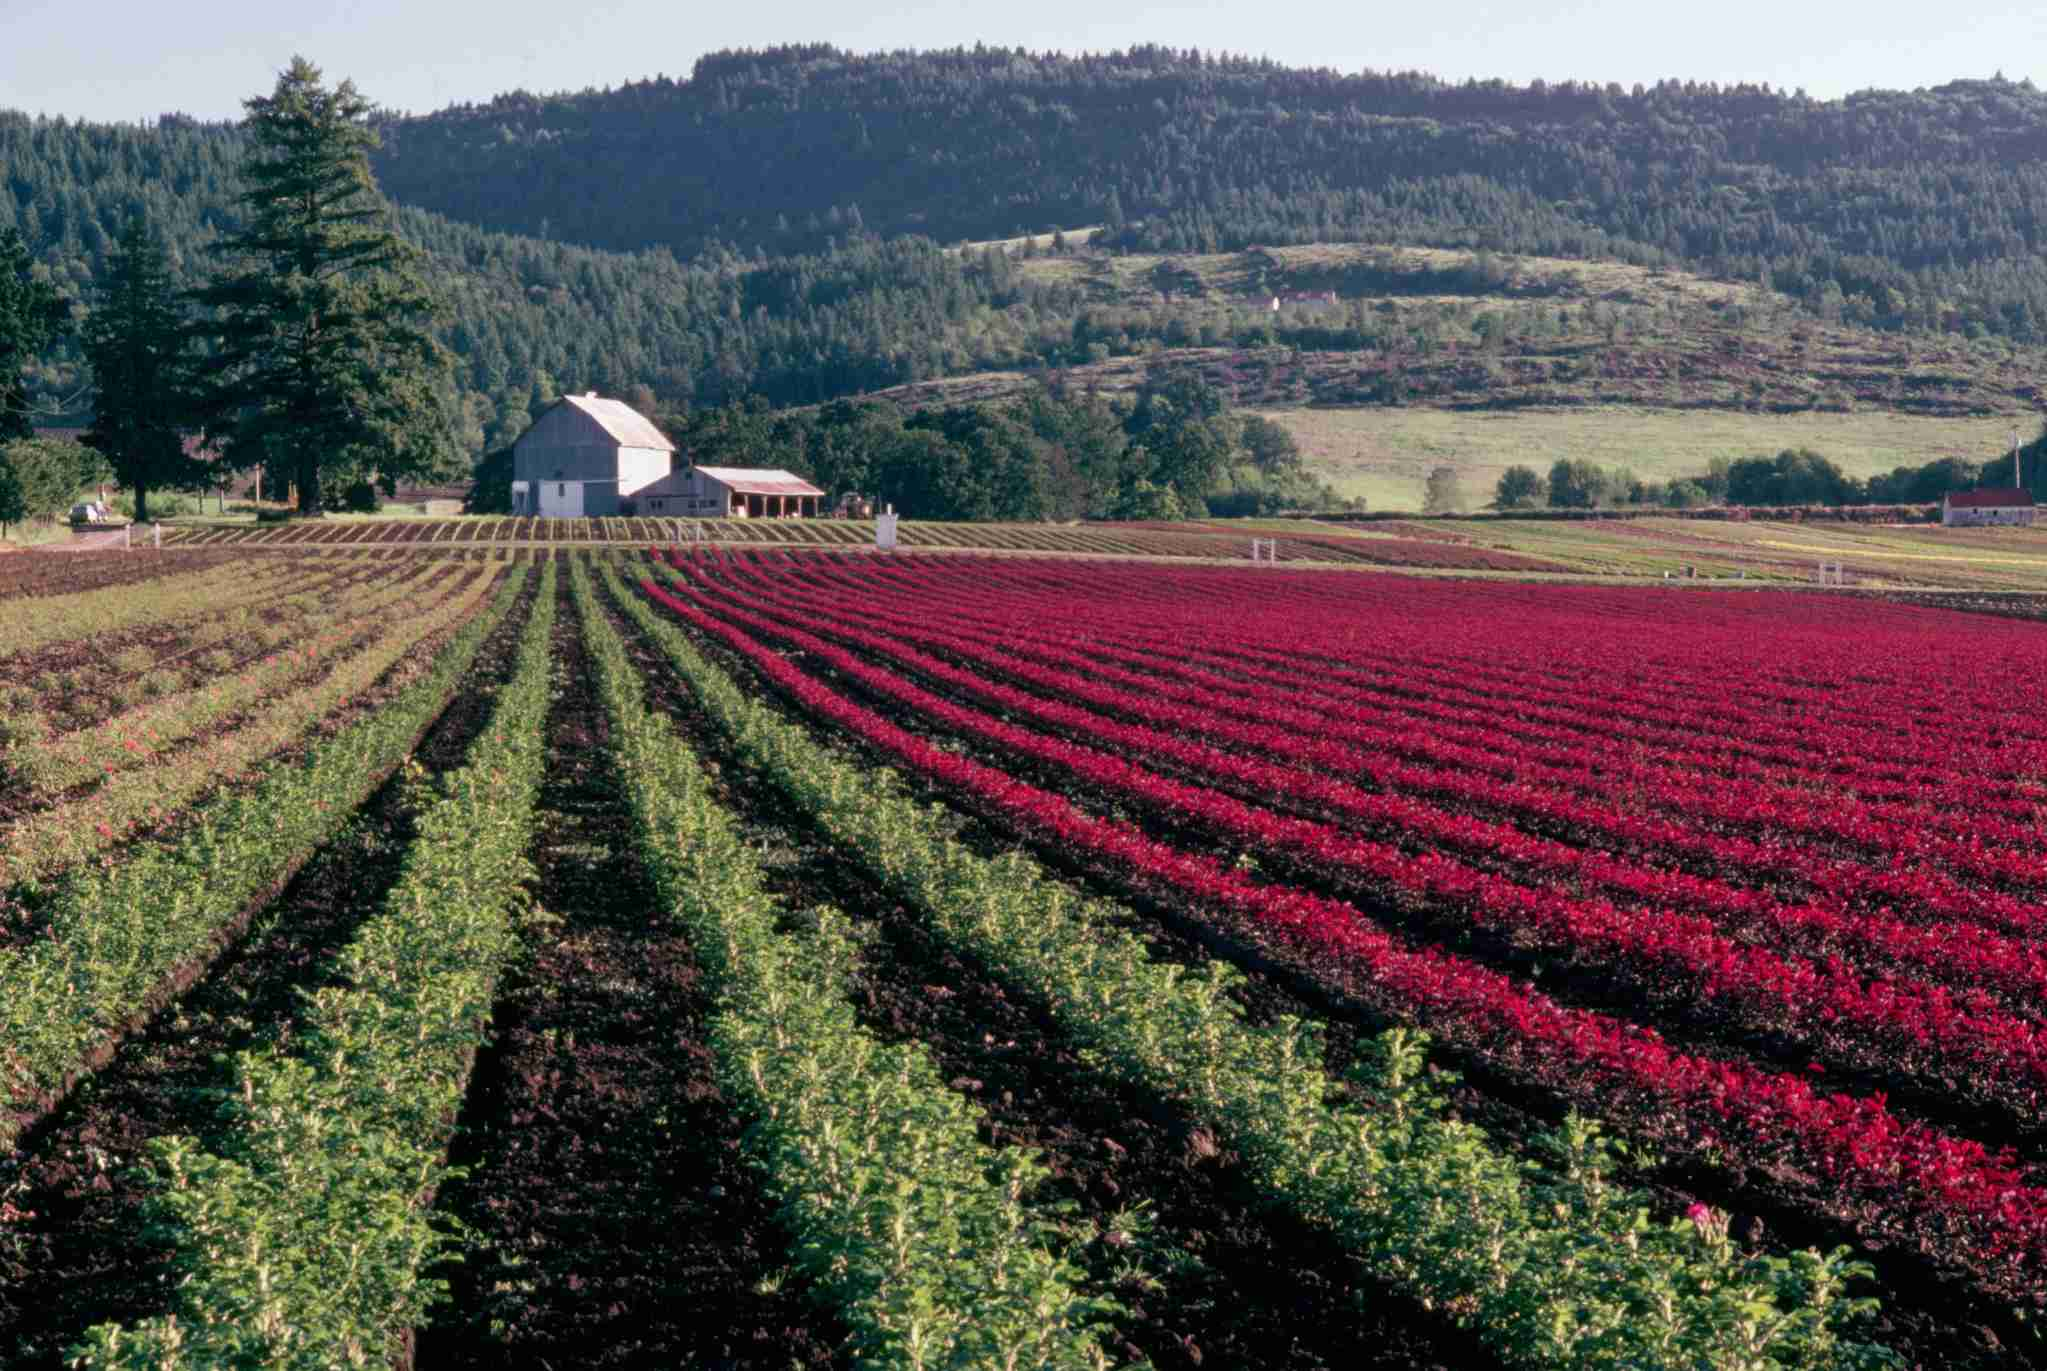 Fields planted for nursery stock with a barn in the distance, Willamette Valley, Oregon. | Location: Newberg area, Willamette Valley, Oregon, USA. (Photo by © Gary Braasch/CORBIS/Corbis via Getty Images)